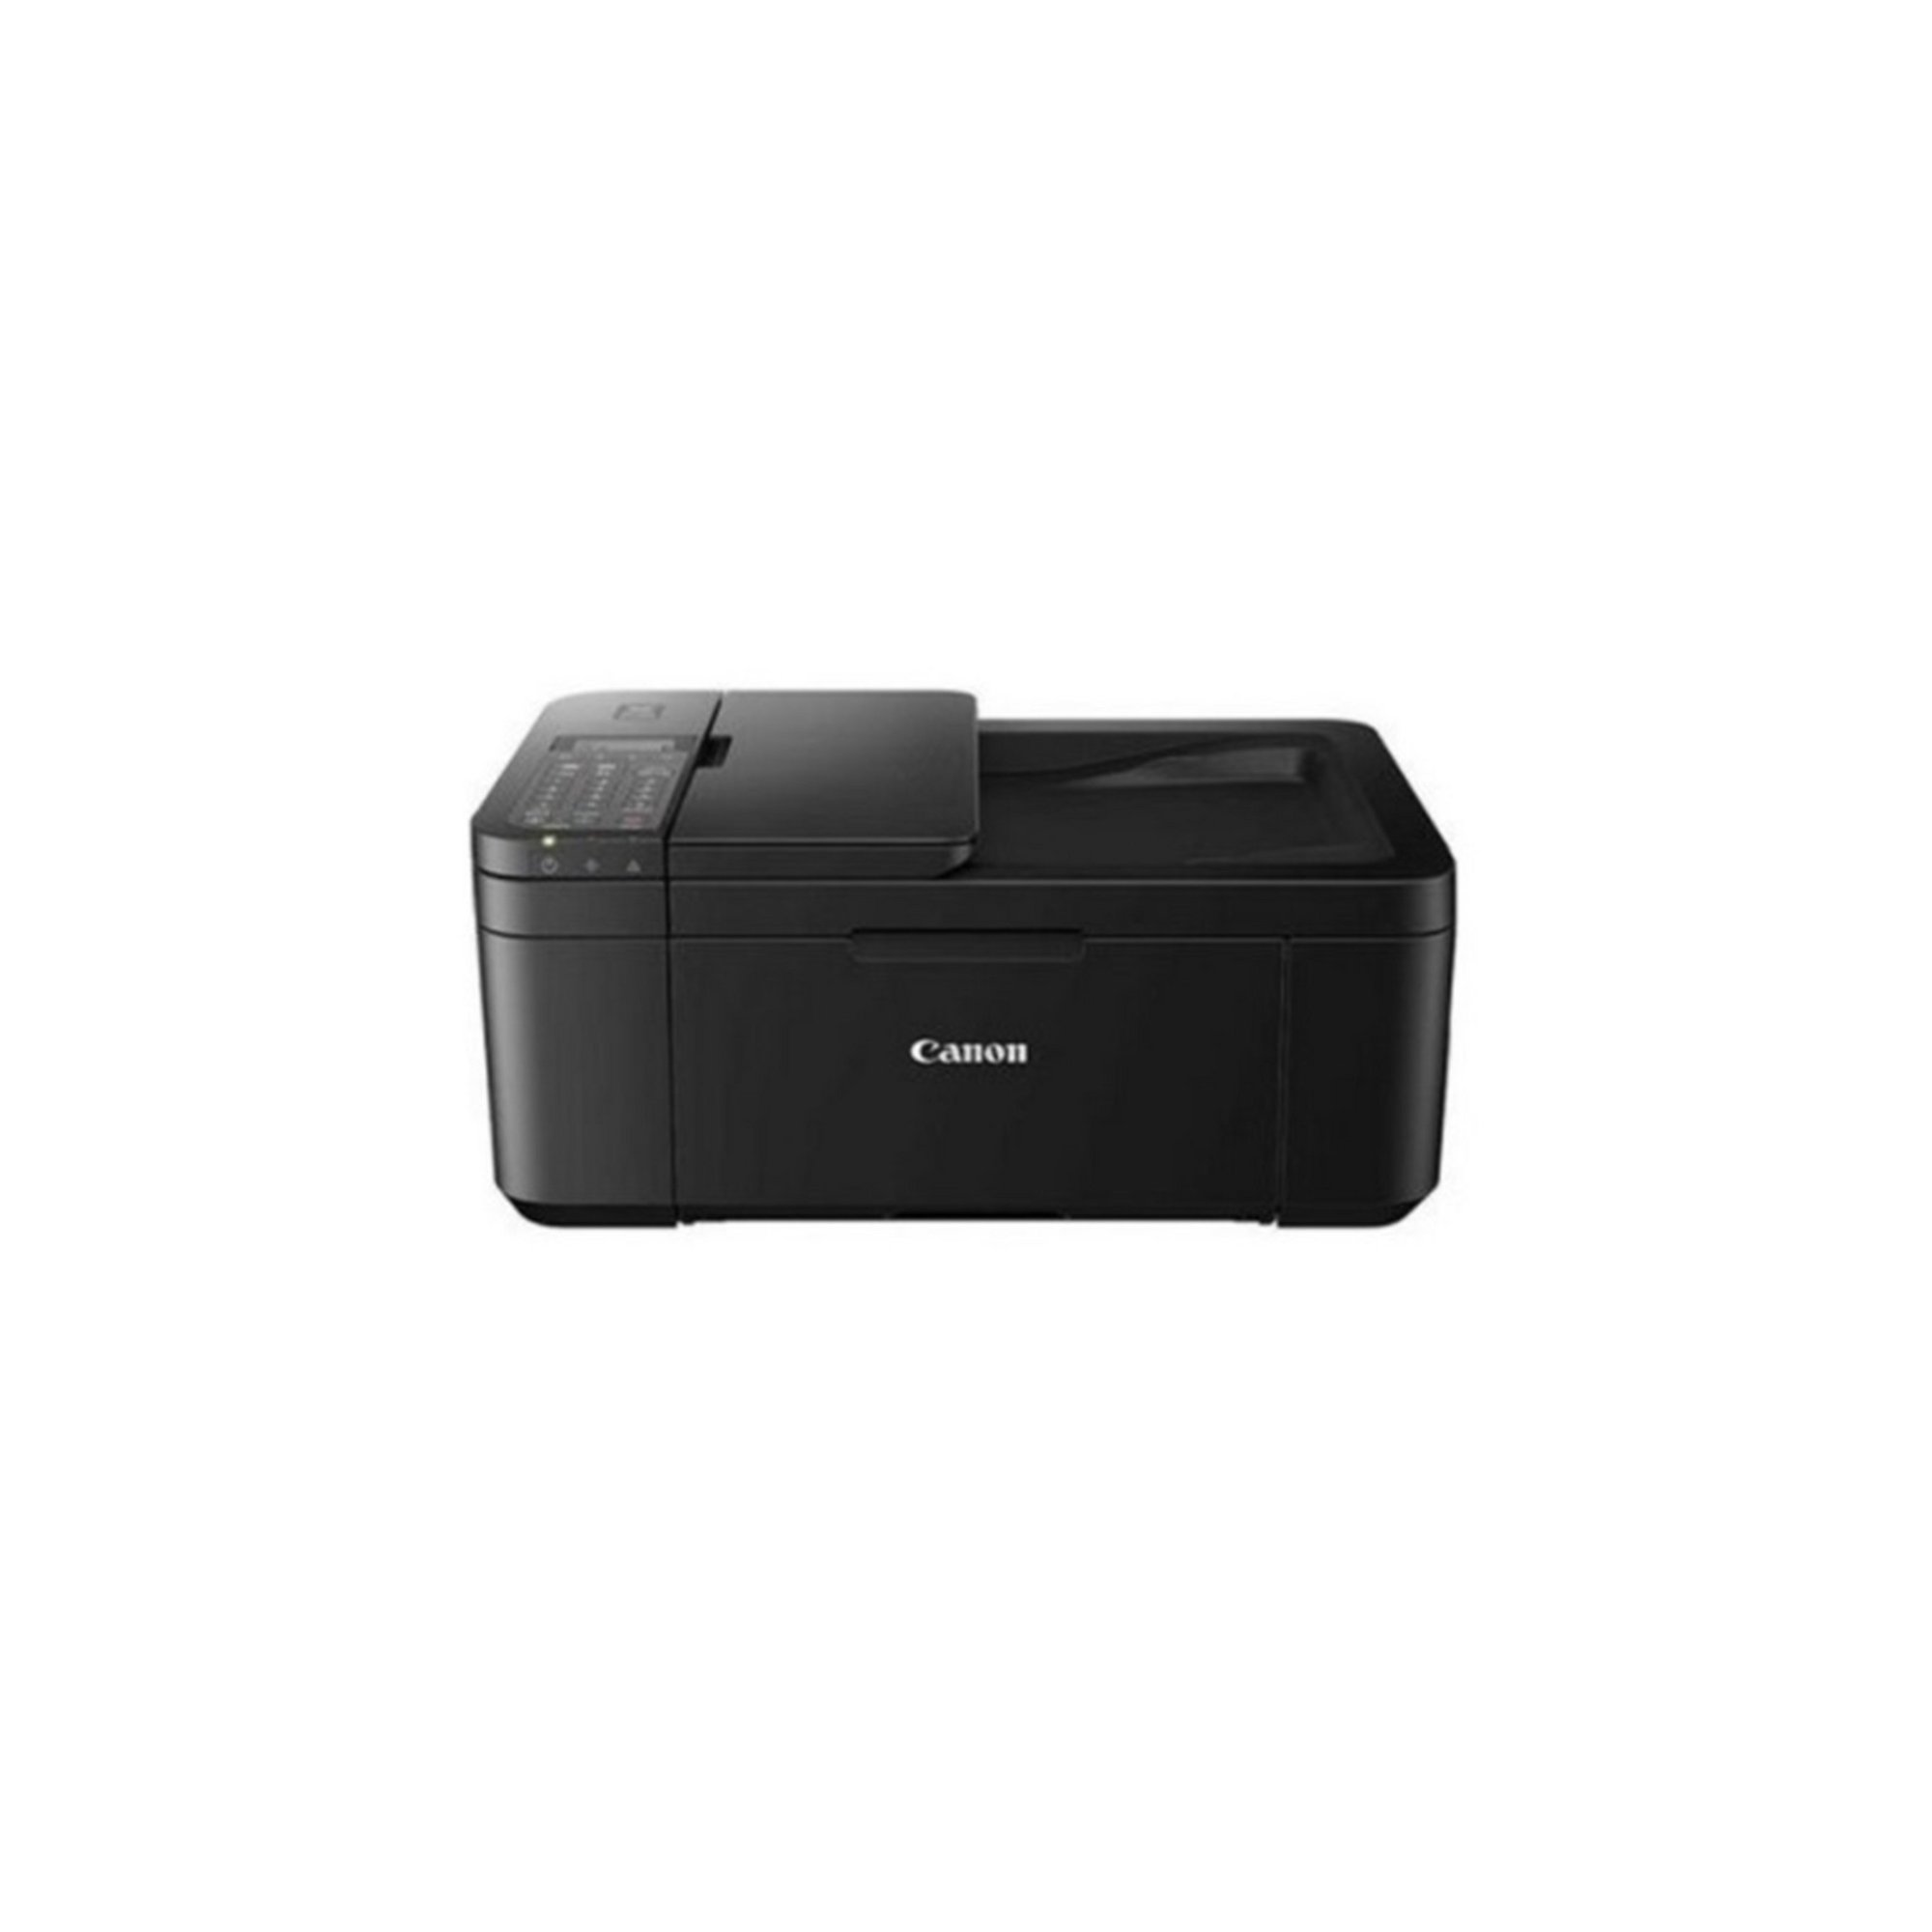 Image of CANON PIXMA TR-4550 All-in-One Wireless Inkjet Printer with Fax